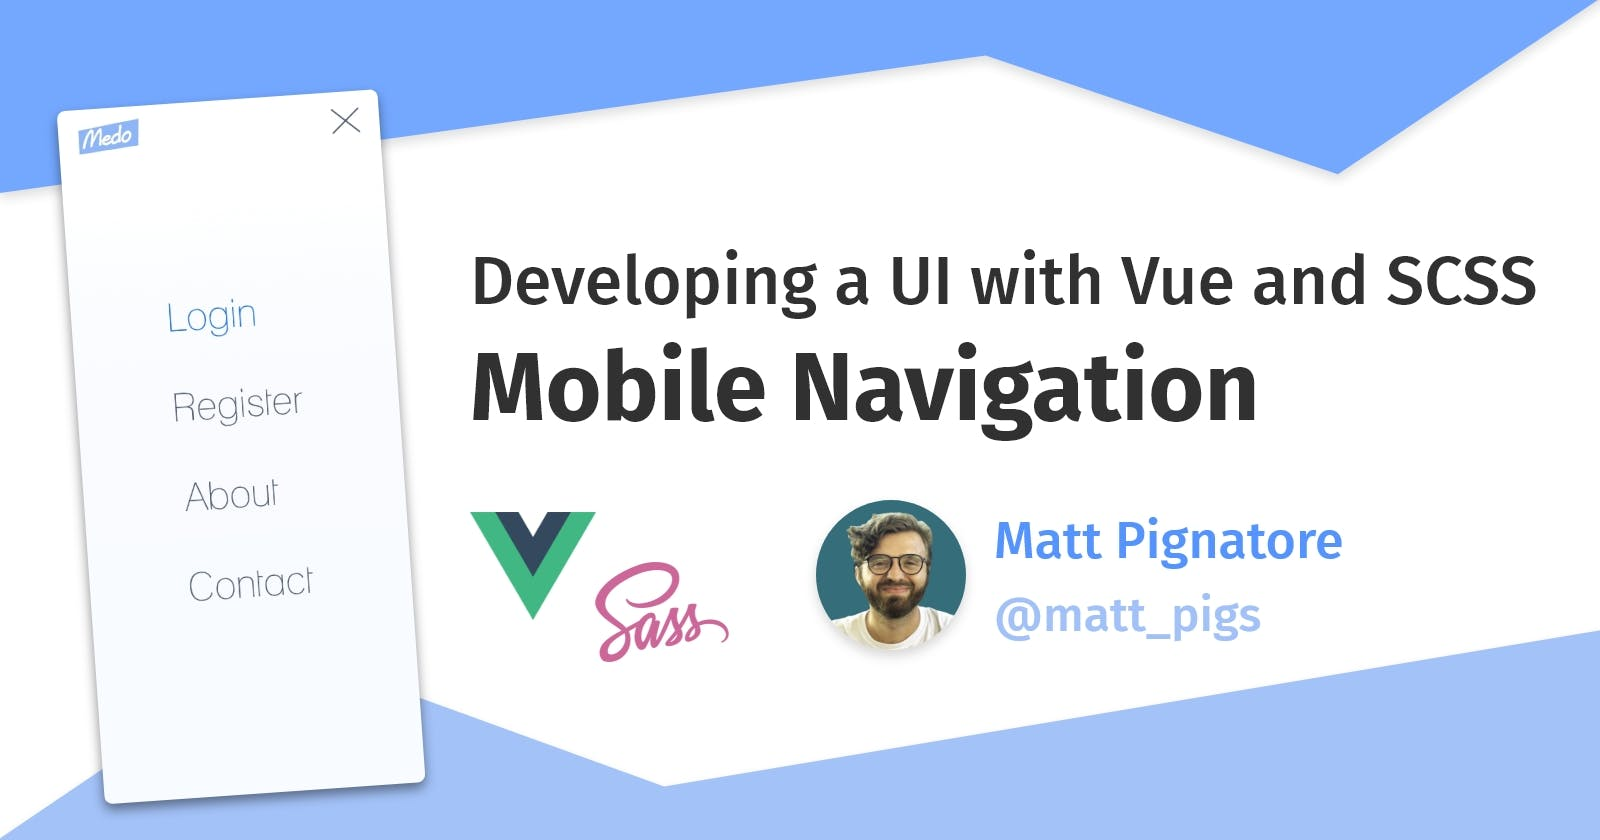 Developing a UI with Vue, Part 3: Mobile Navigation